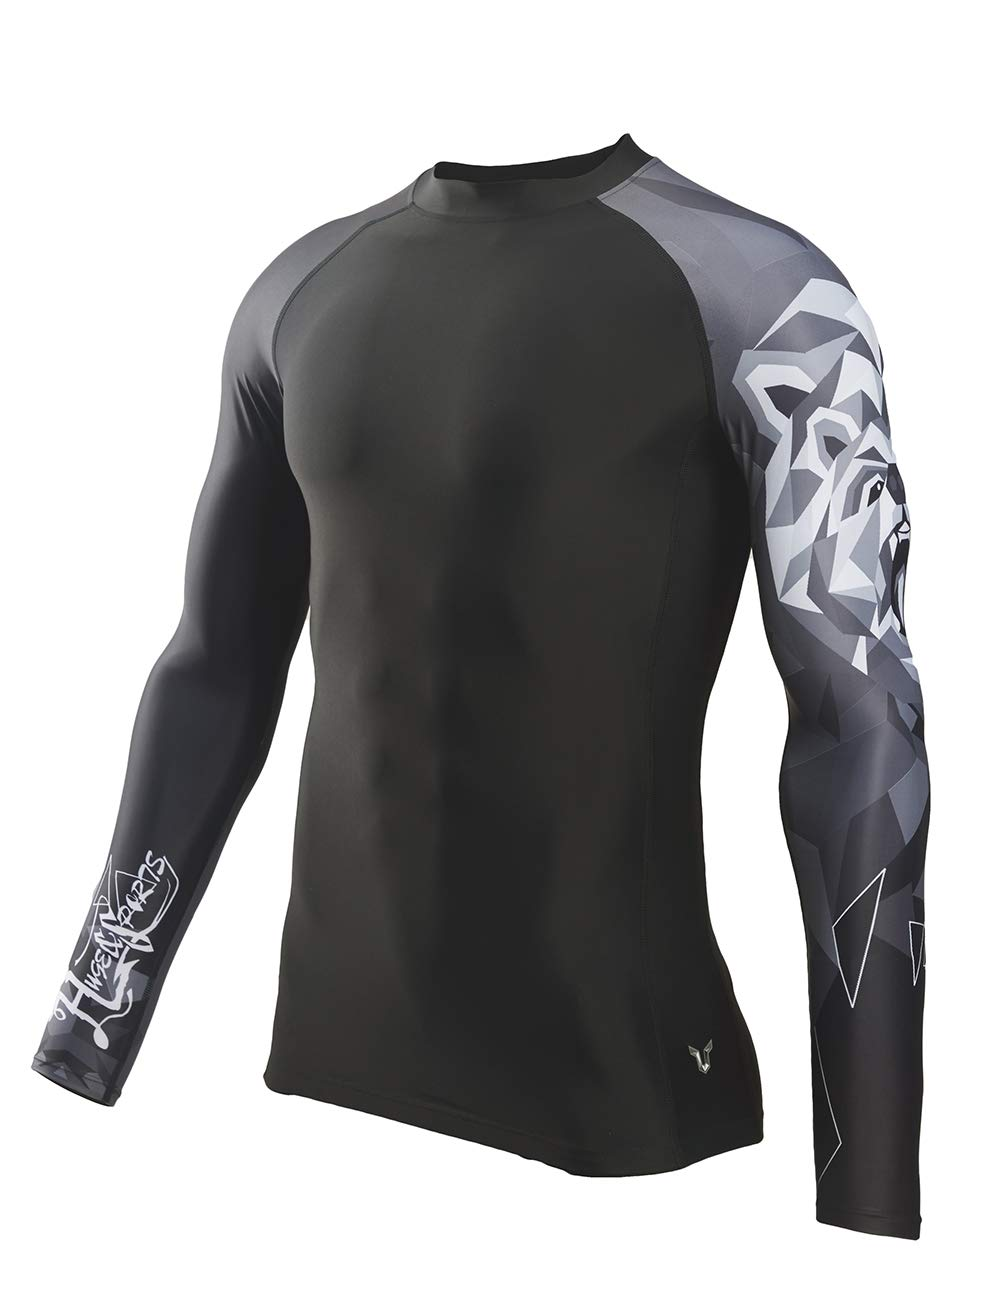 HUGE SPORTS Wildling Series UV Protection Quick Dry Compression Rash Guard(Bear,XL) by HUGE SPORTS